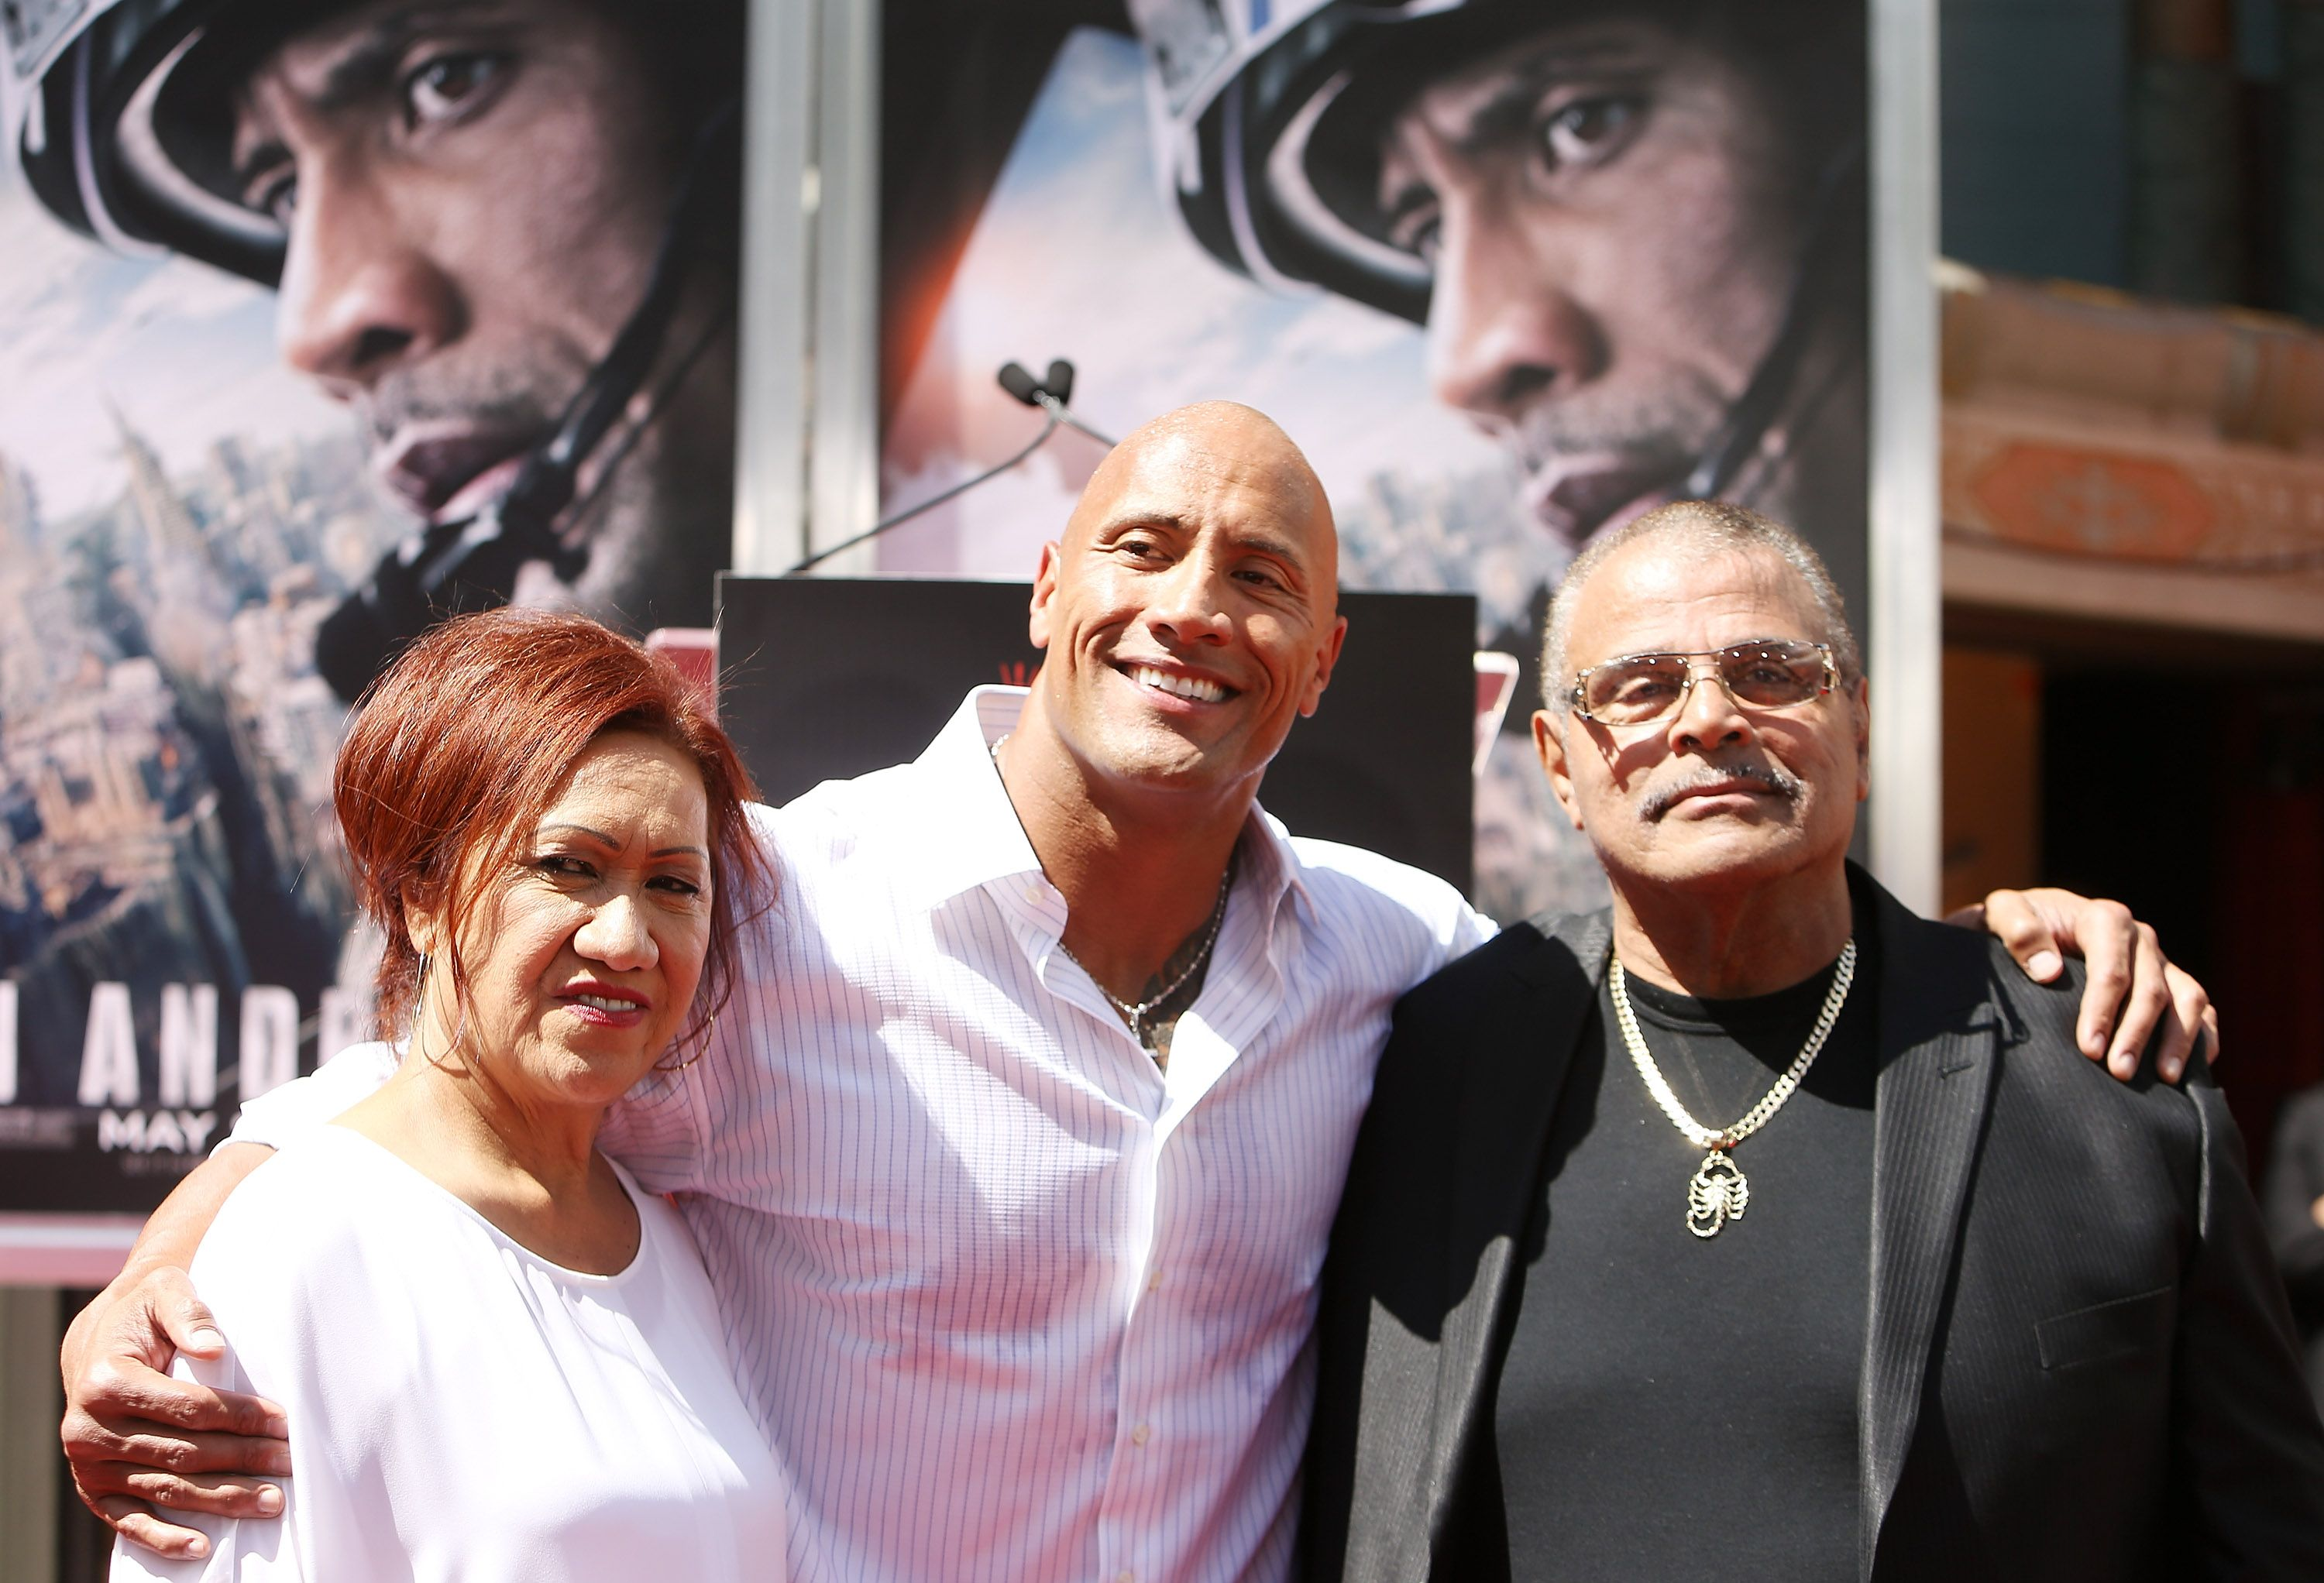 The Rock's Father, Wrestling Legend Rocky Johnson, Has Died at the Age of 75